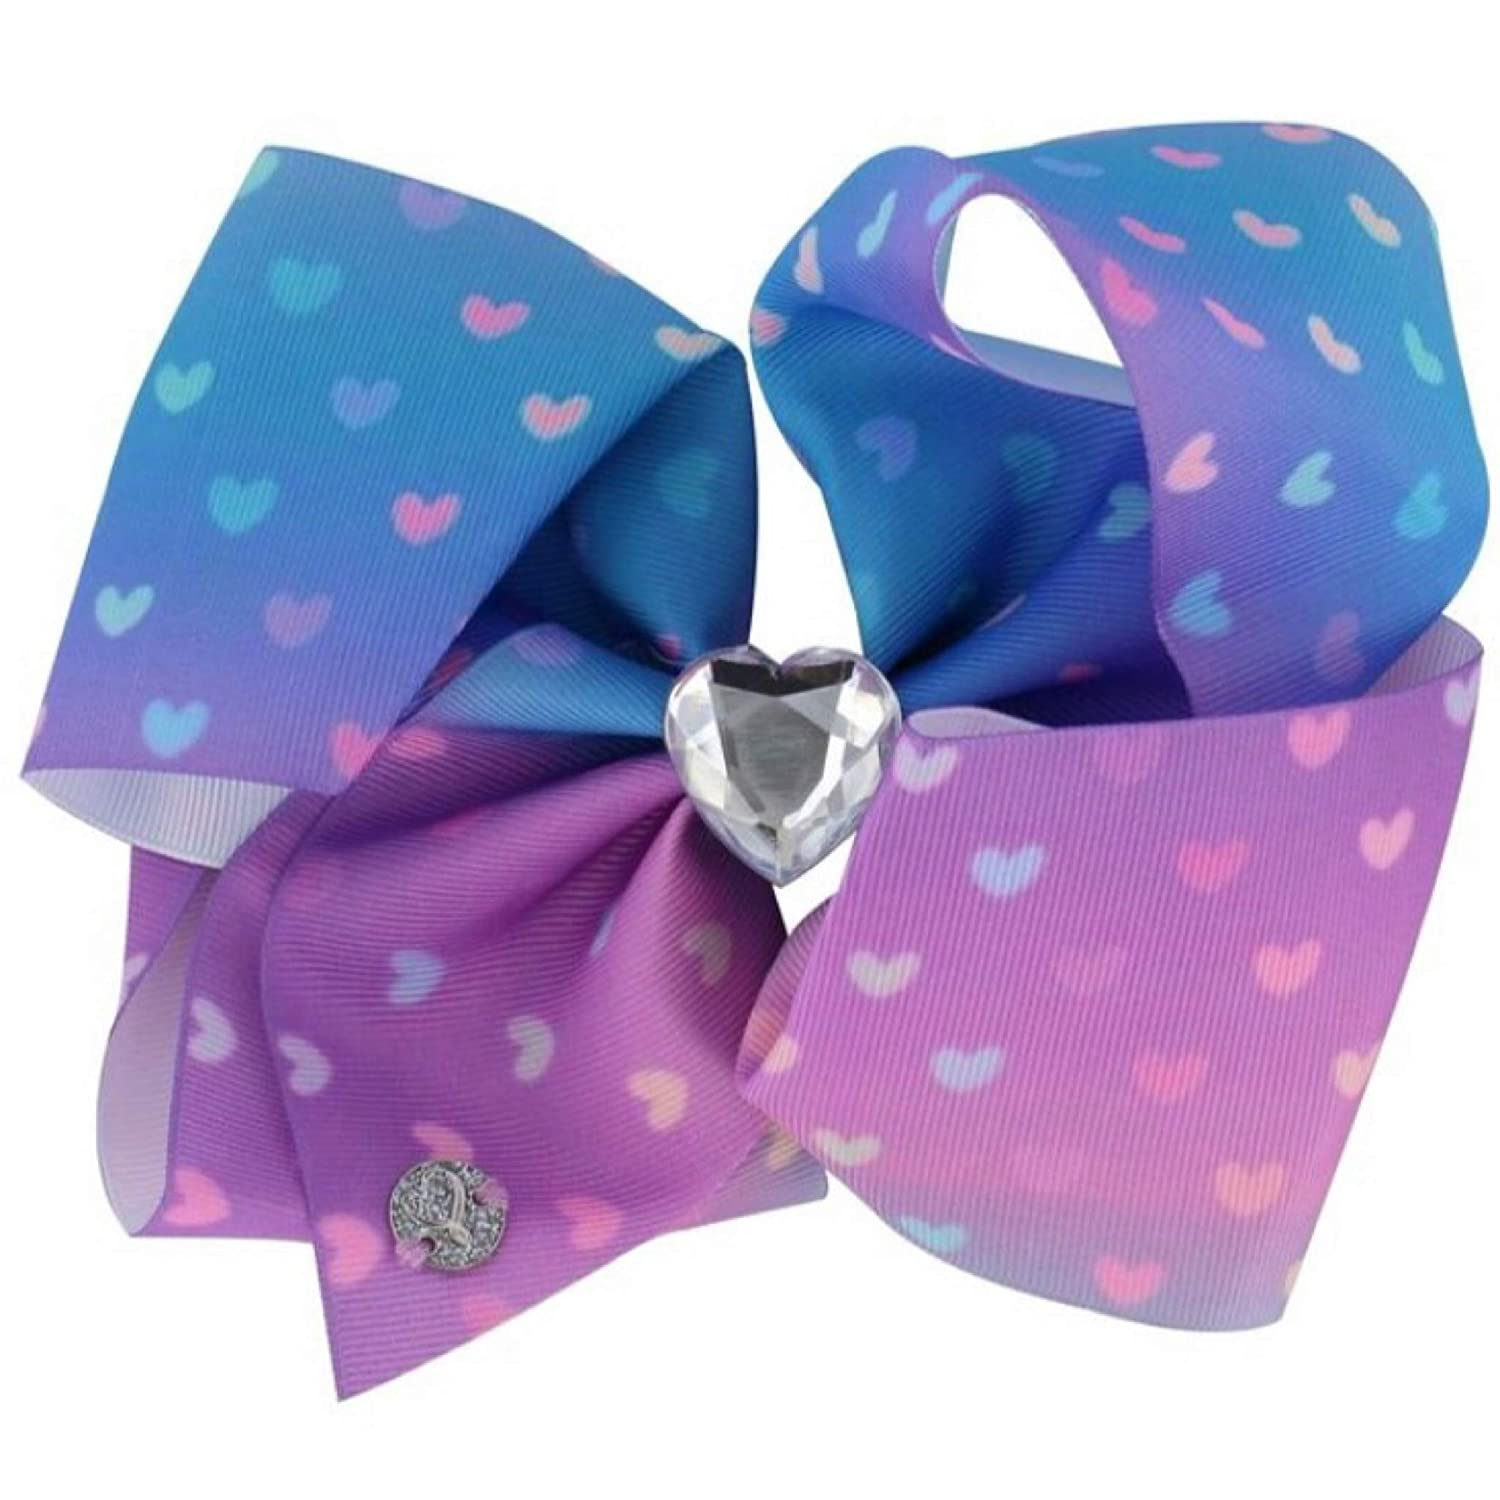 8 Inch JOJO SIWA Large Hair Bow Rainbow Valentine/'s Day Love Printed Hairclip